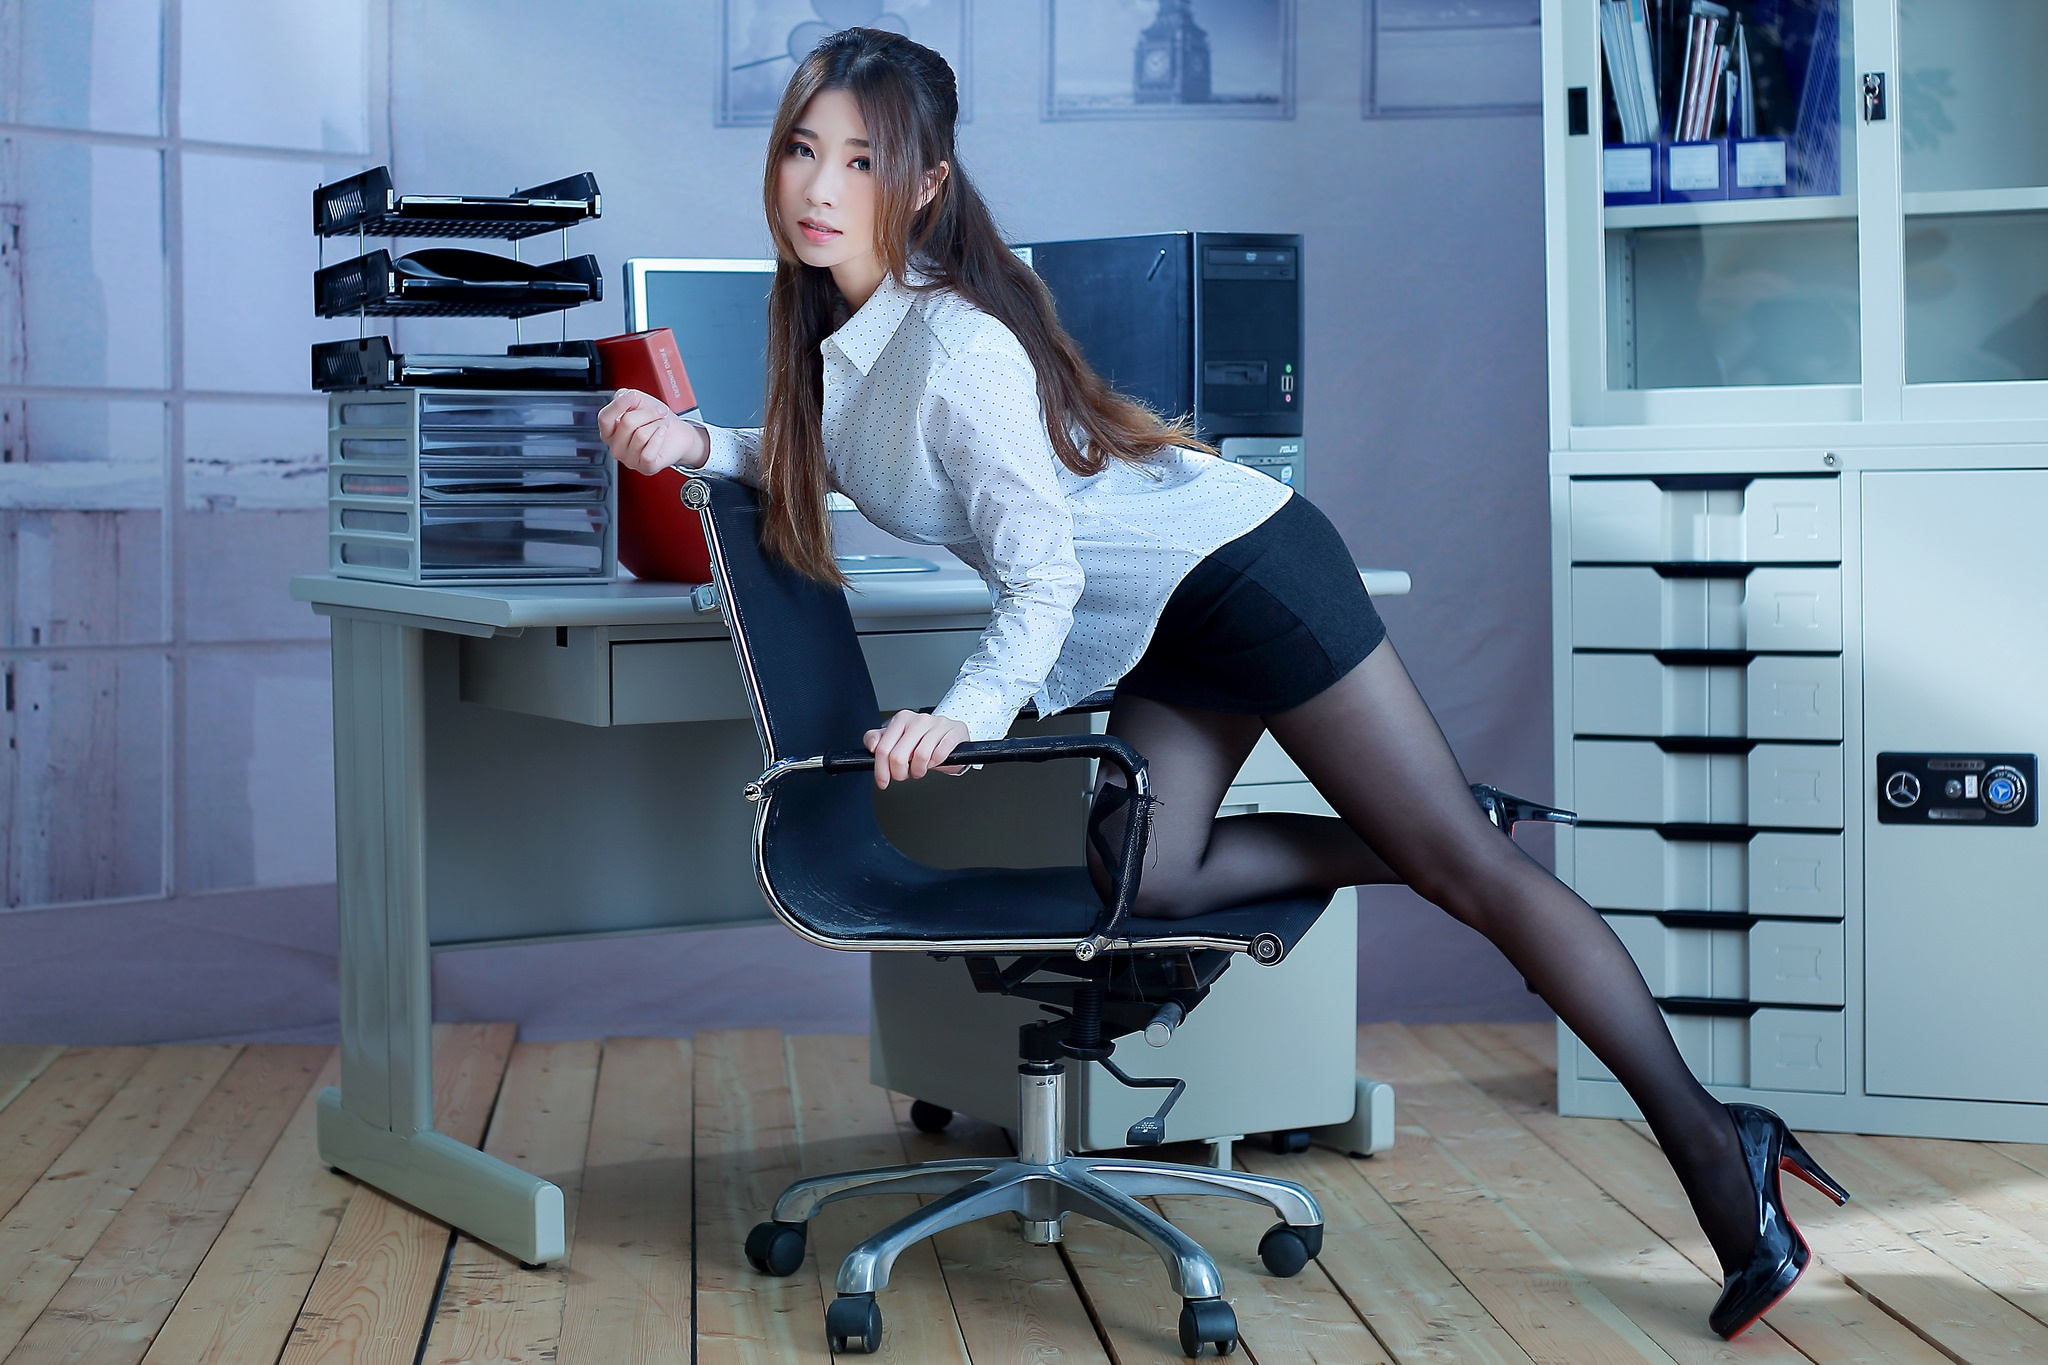 The office hot girl — photo 13